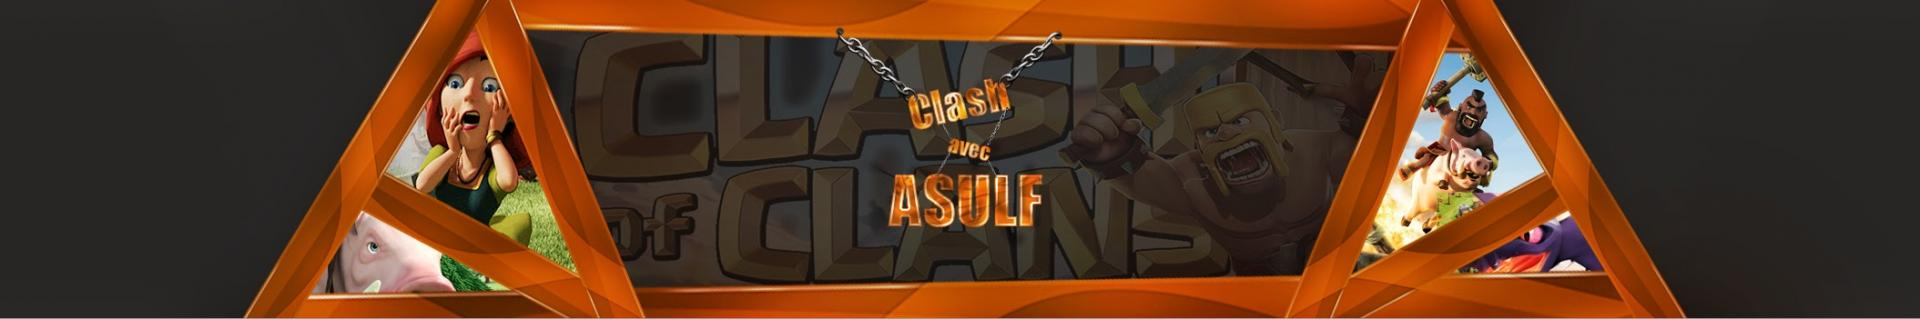 Asulf image illustration youtubeur clash of clans royale